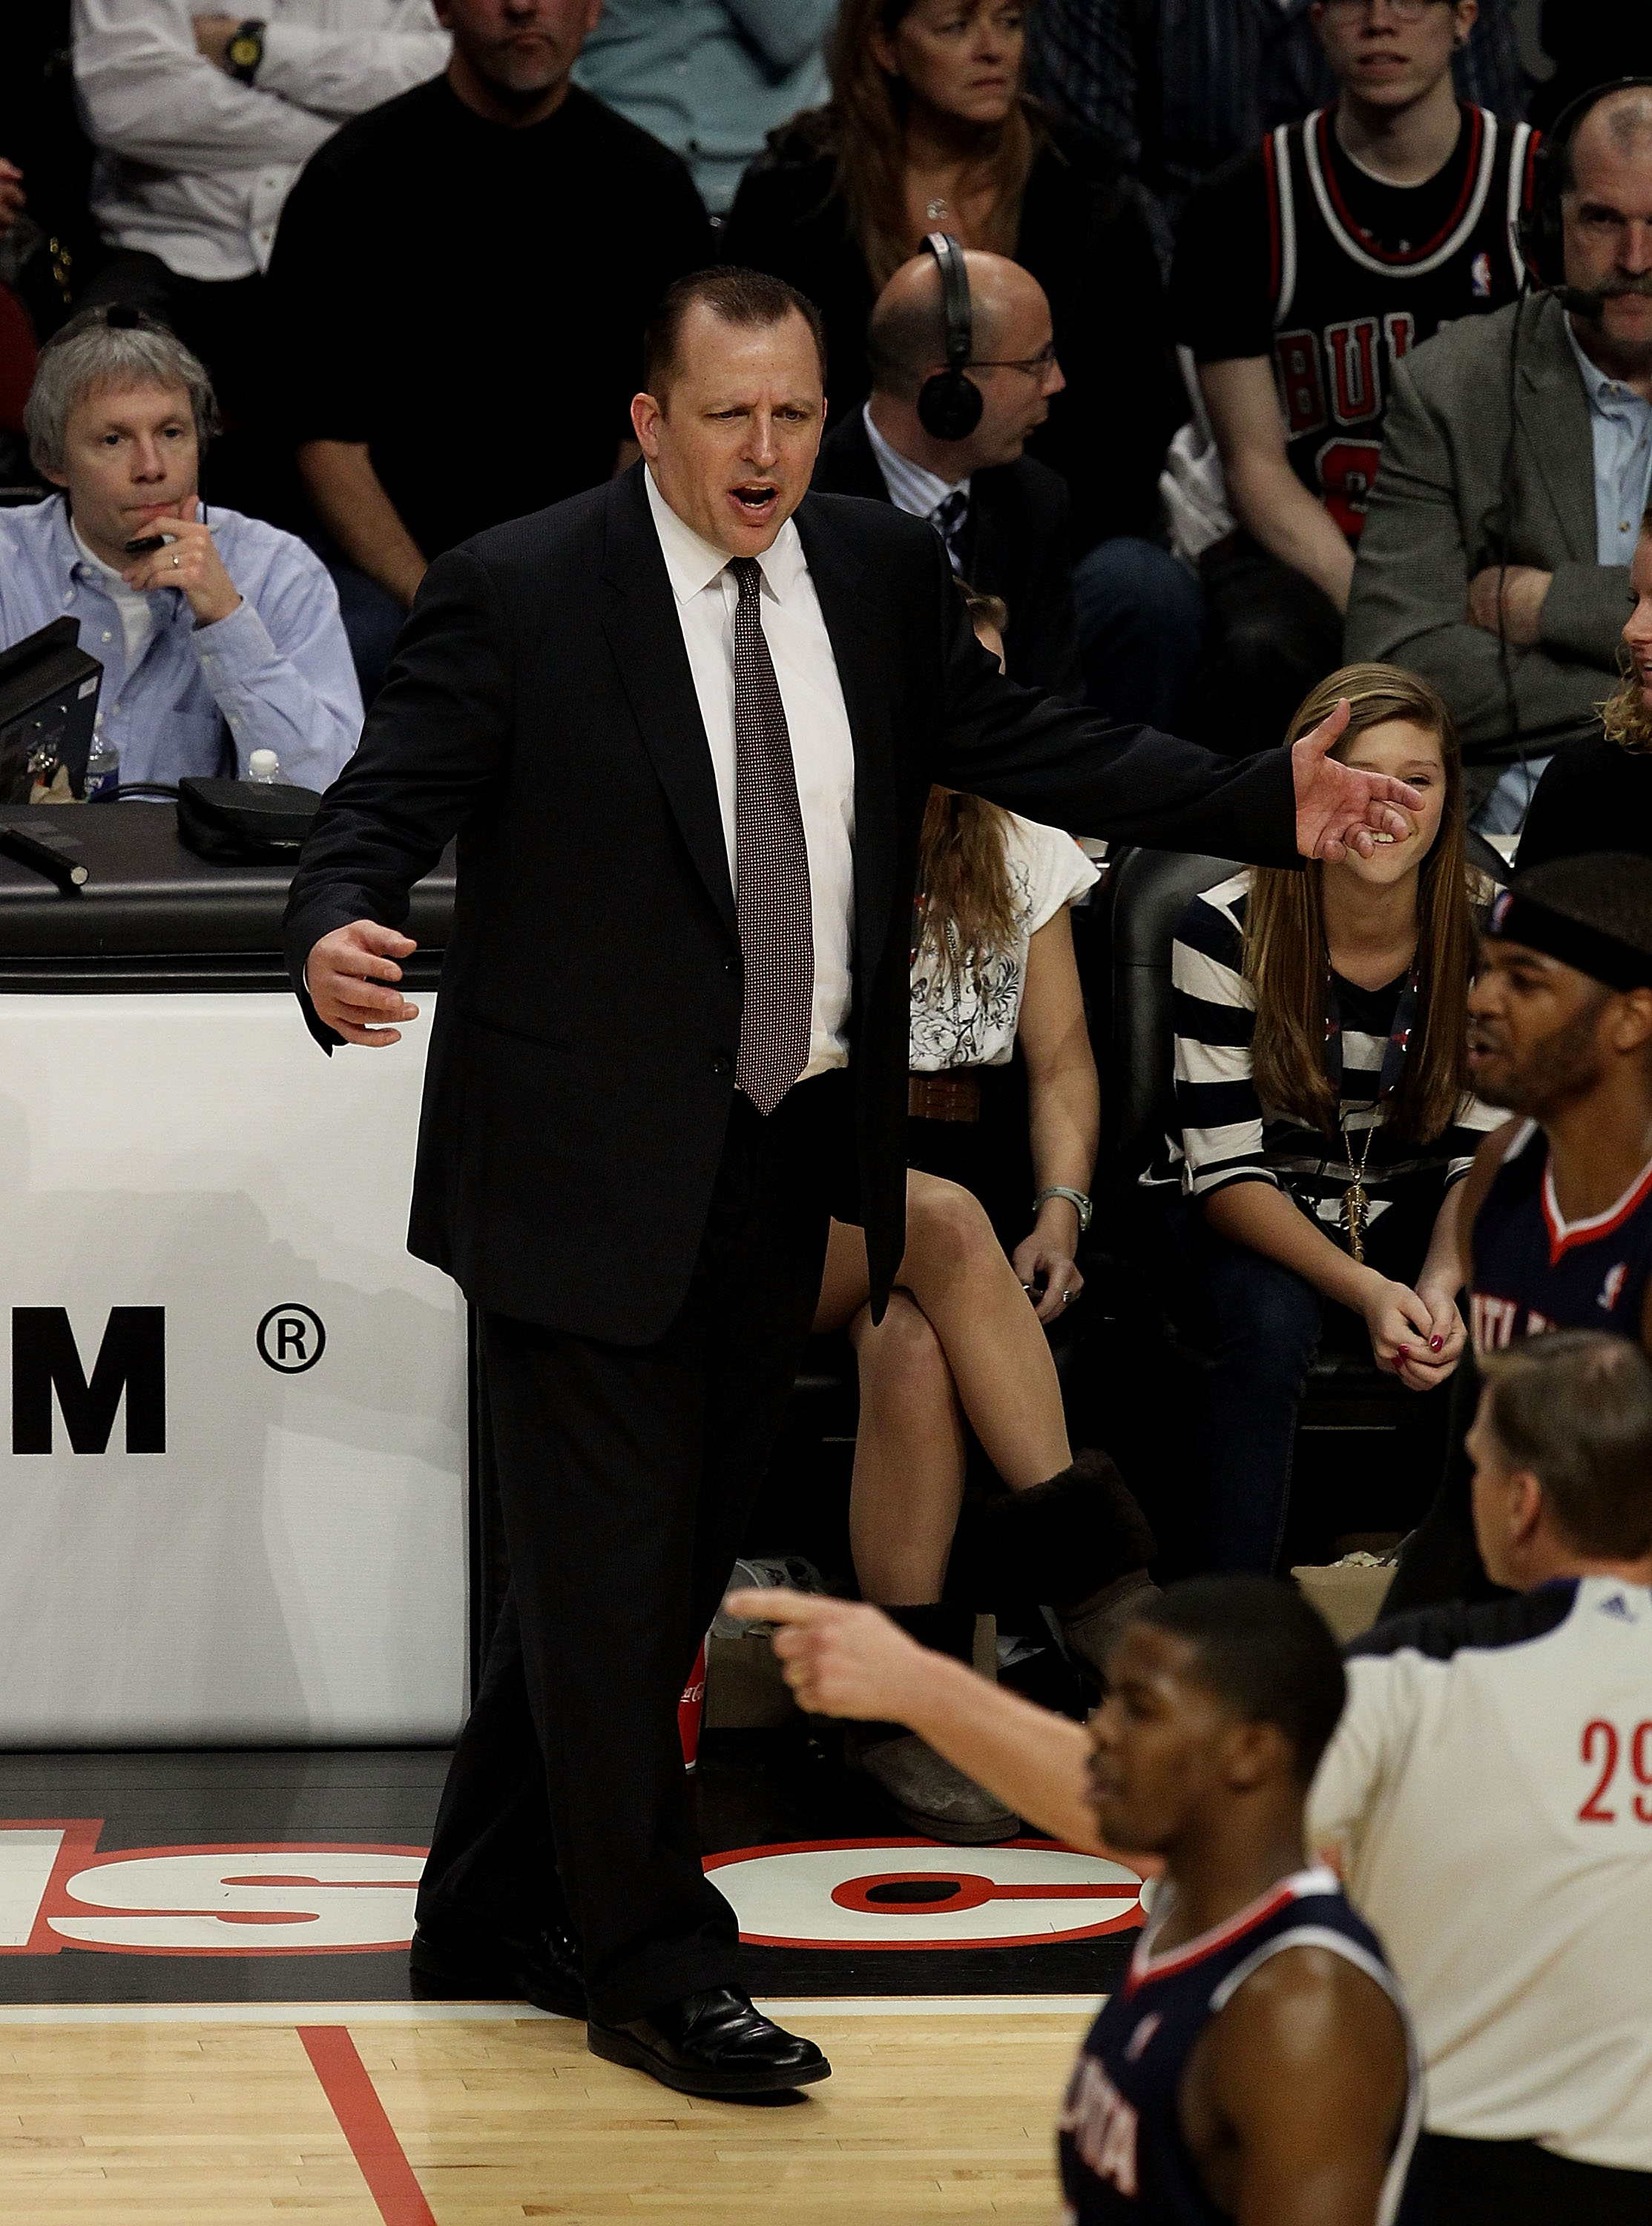 CHICAGO, IL - MARCH 11: Head coach Tom Thibodeau of the Chicago Bulls argues a call with referee Steve Javie #29 during a game against the Atlanta Hawks at the United Center on March 11, 2011 in Chicago, Illinois. The Bulls defeated the Hawks 94-76. NOTE